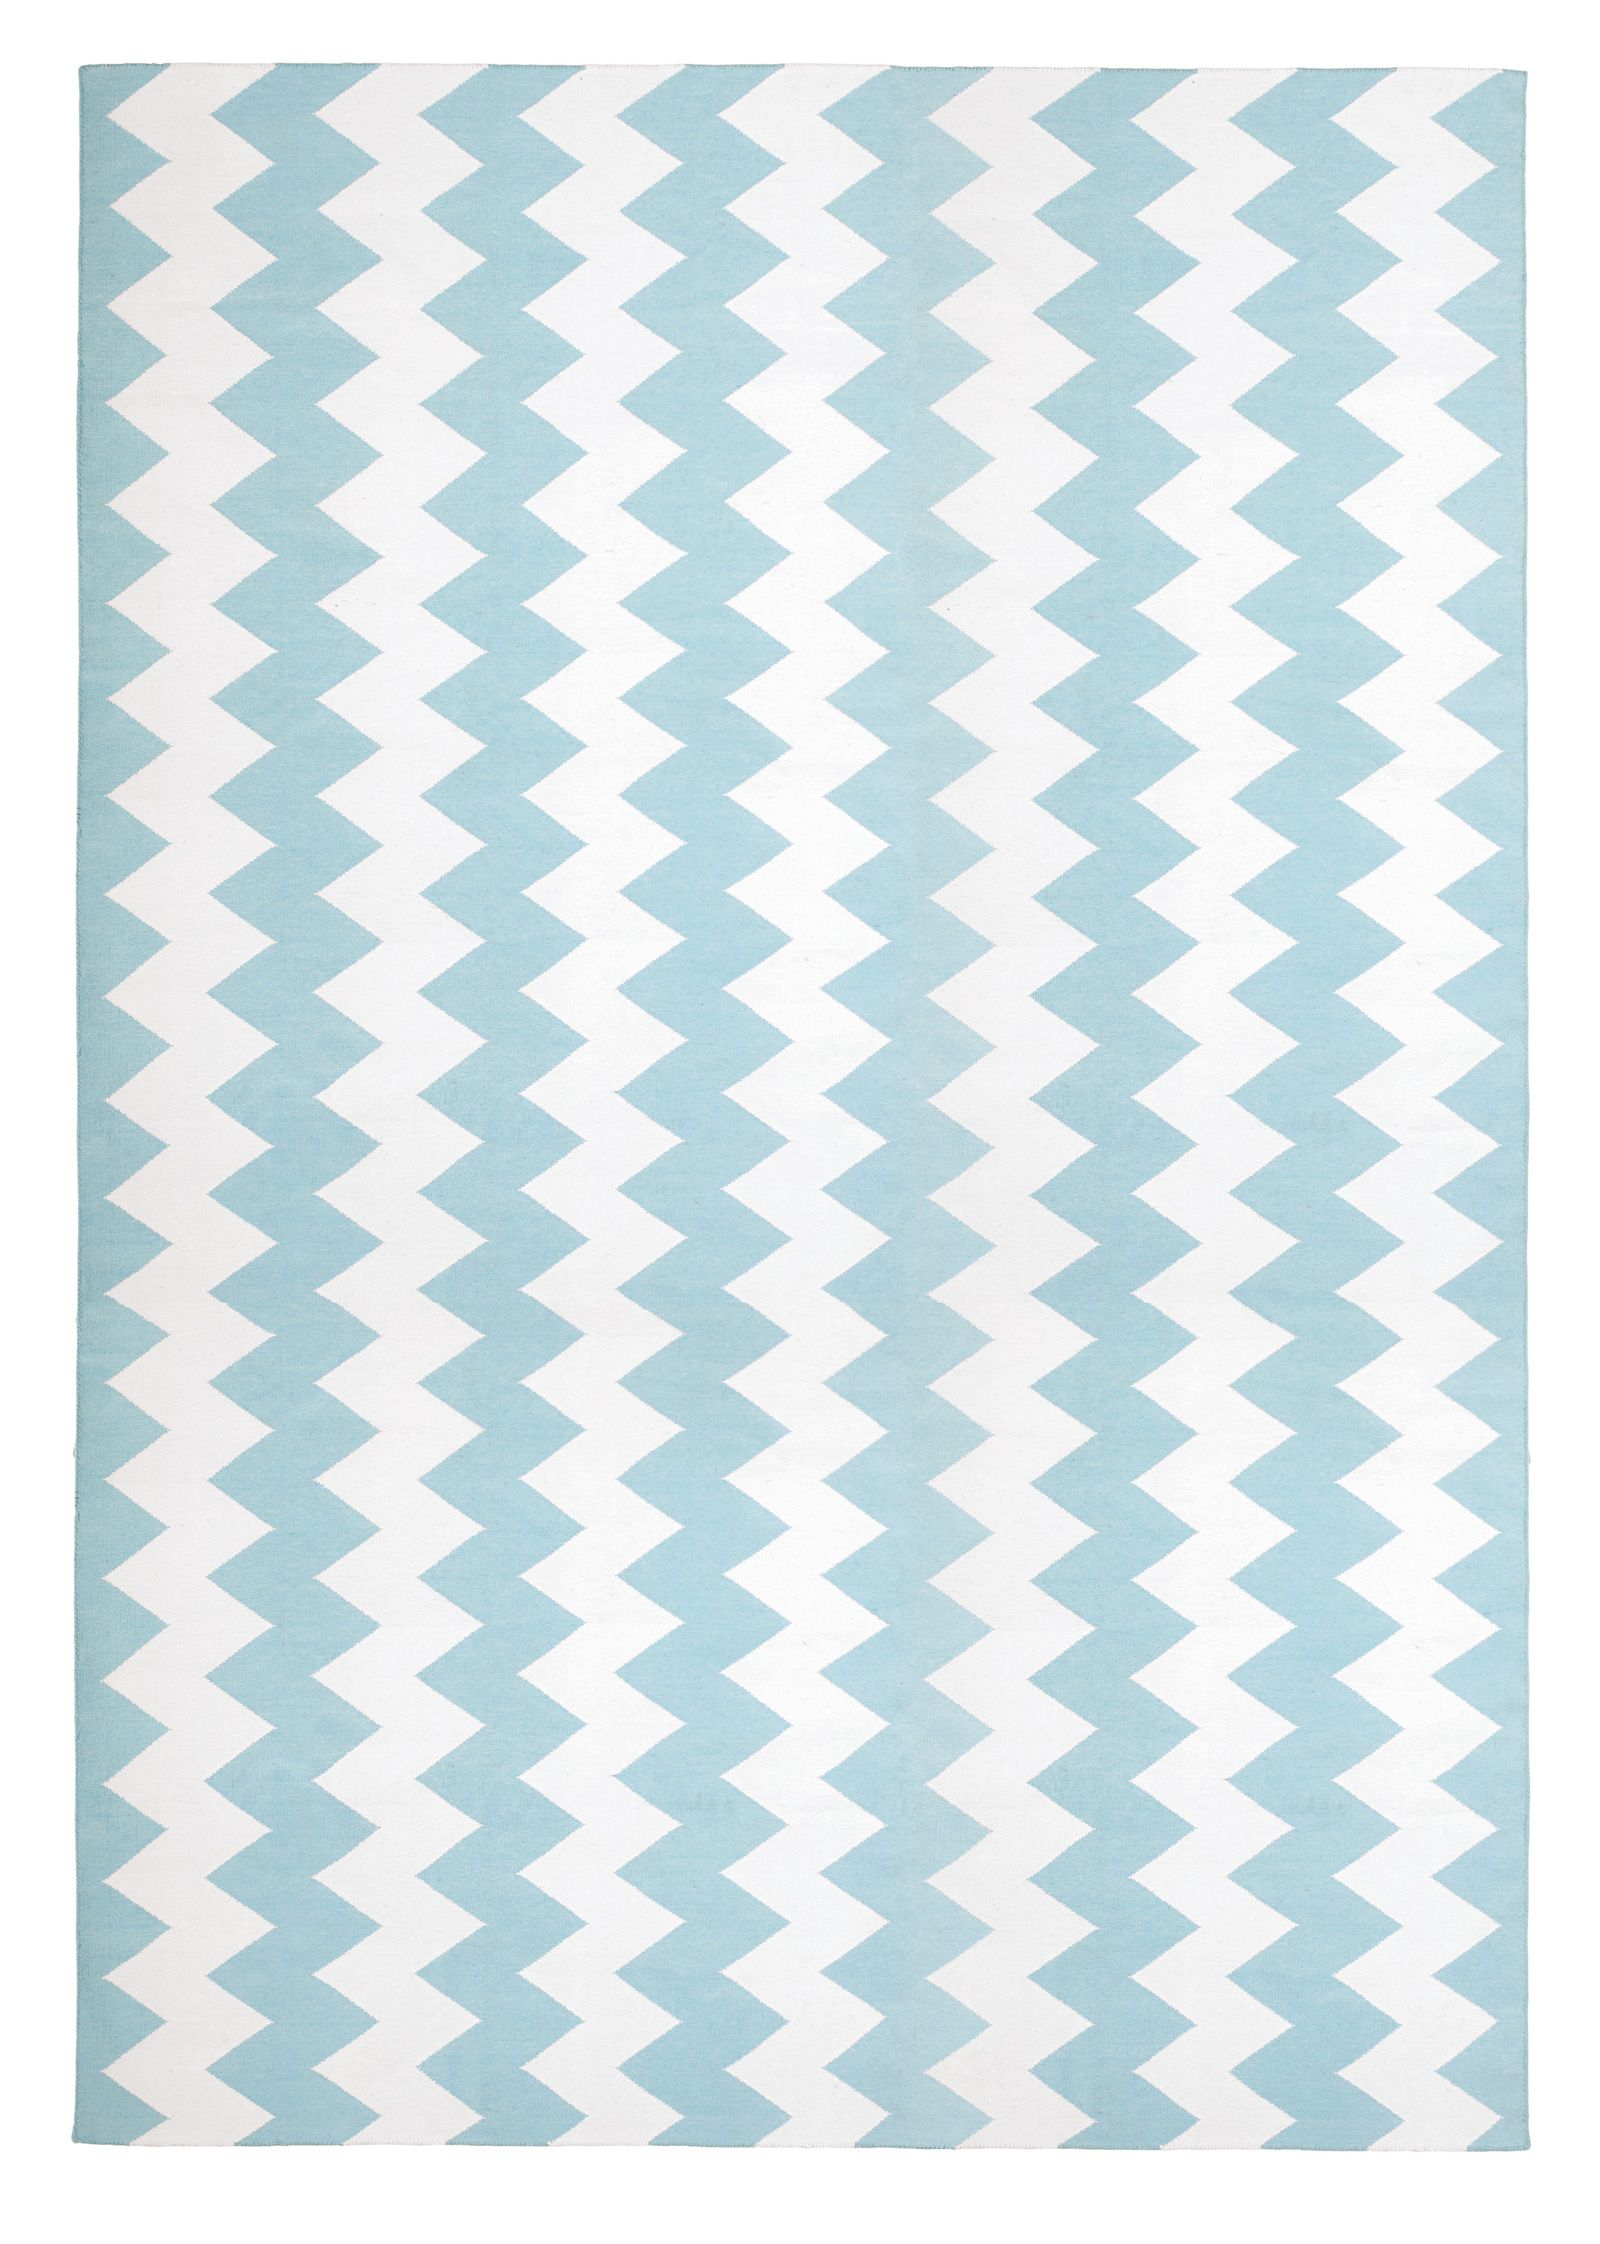 Haveli Chevron Blue By The Rug Company Cotton Flatweave Dhurries And Kilims Nursery